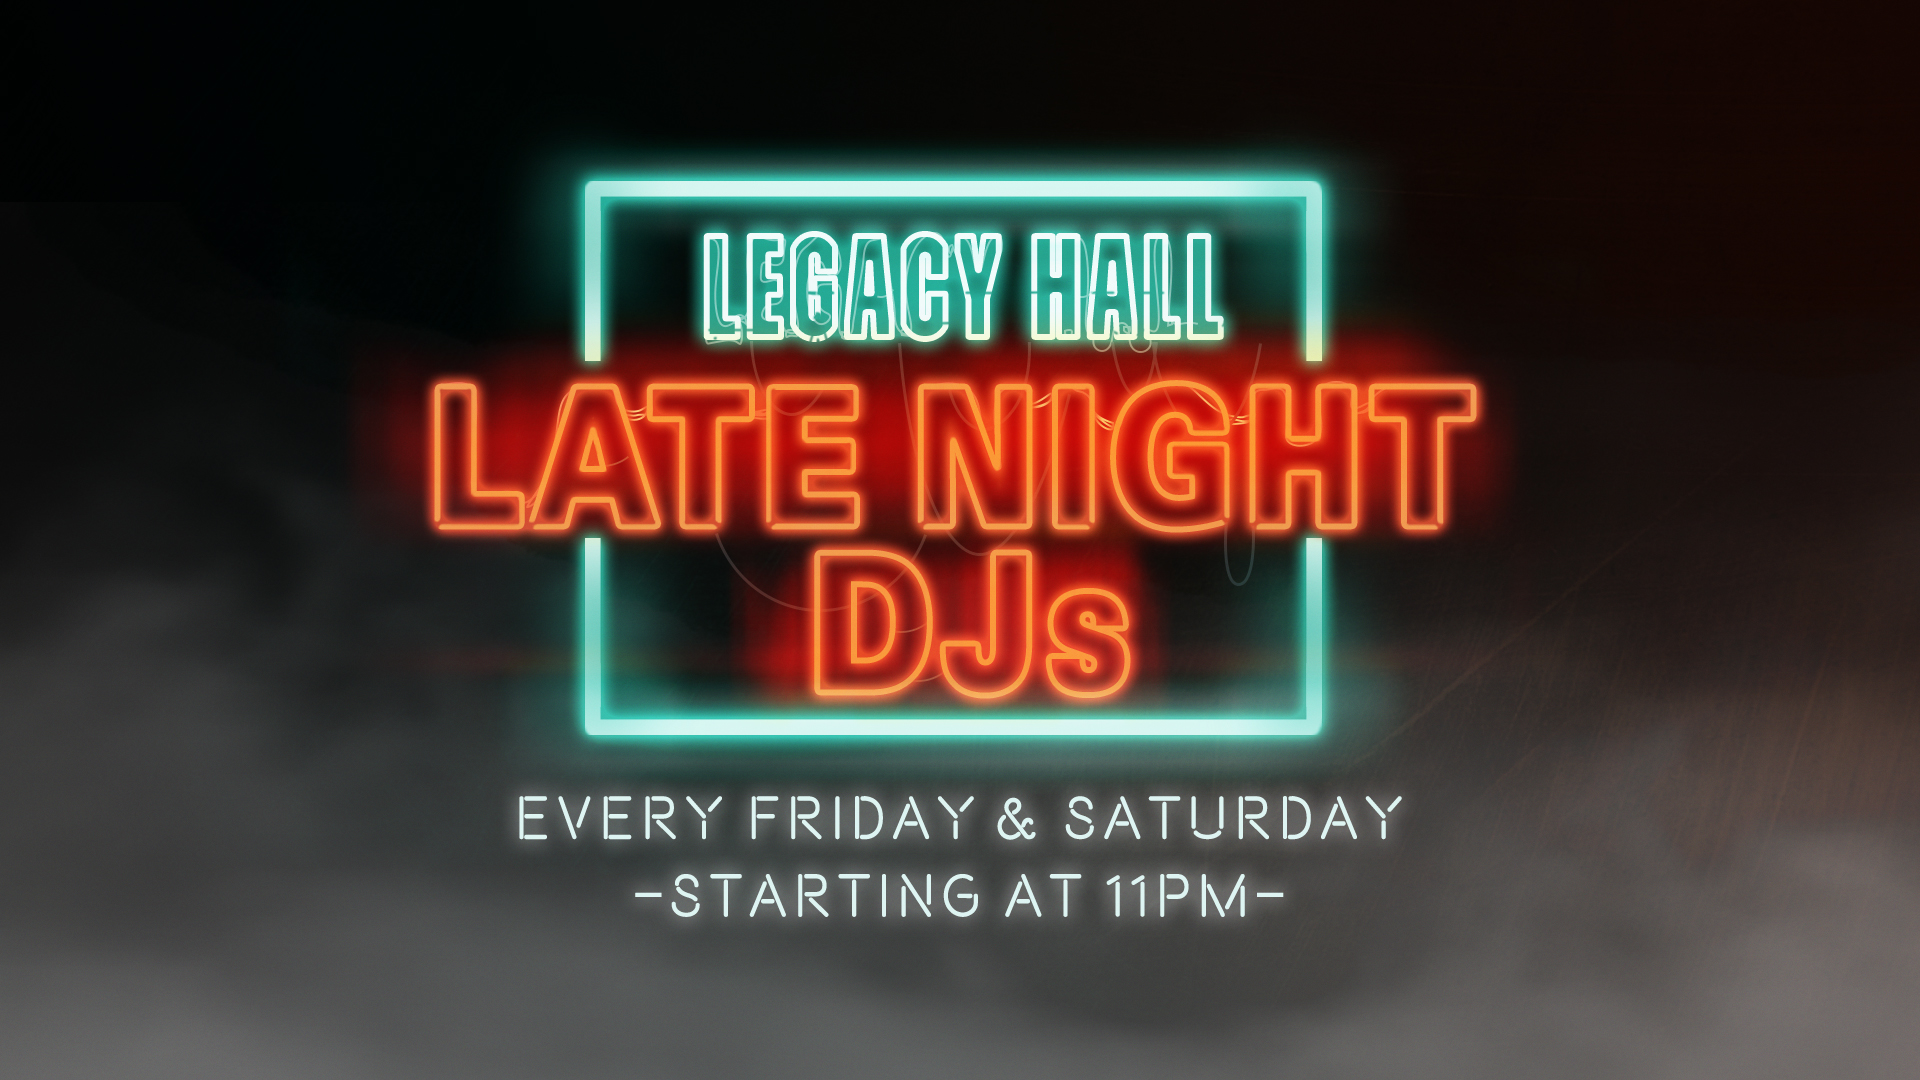 Promo image of Late Night DJ: Latin Prince